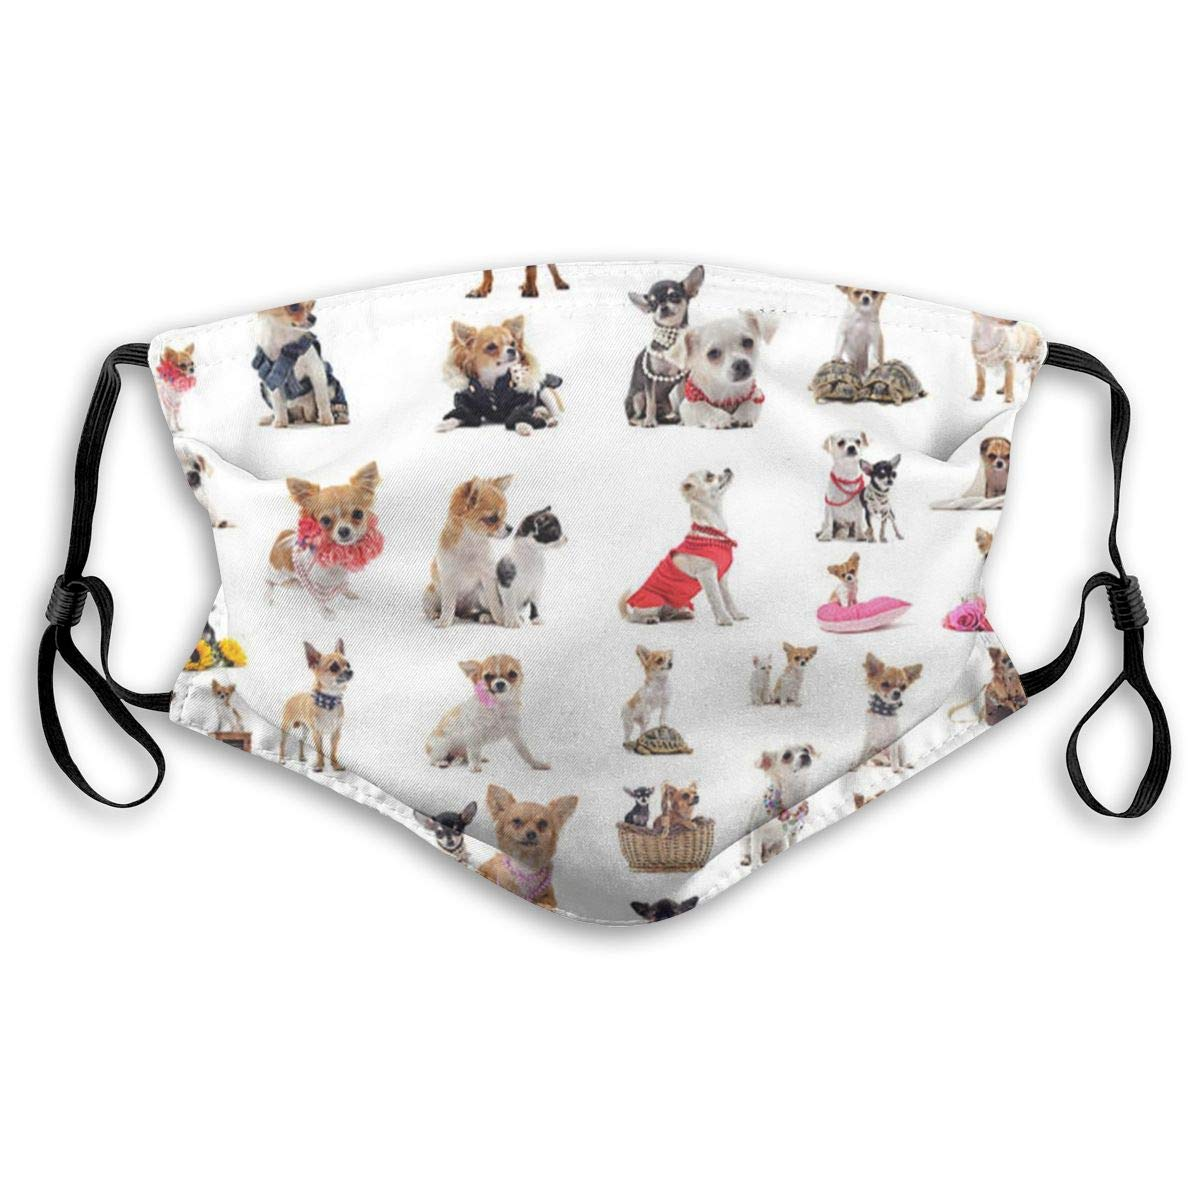 Cute Chihuahua Pug Pattern Print Mouth Masks With Filter Washable And Reusable Anti Dust Breathable Mask With Adjustable Ear